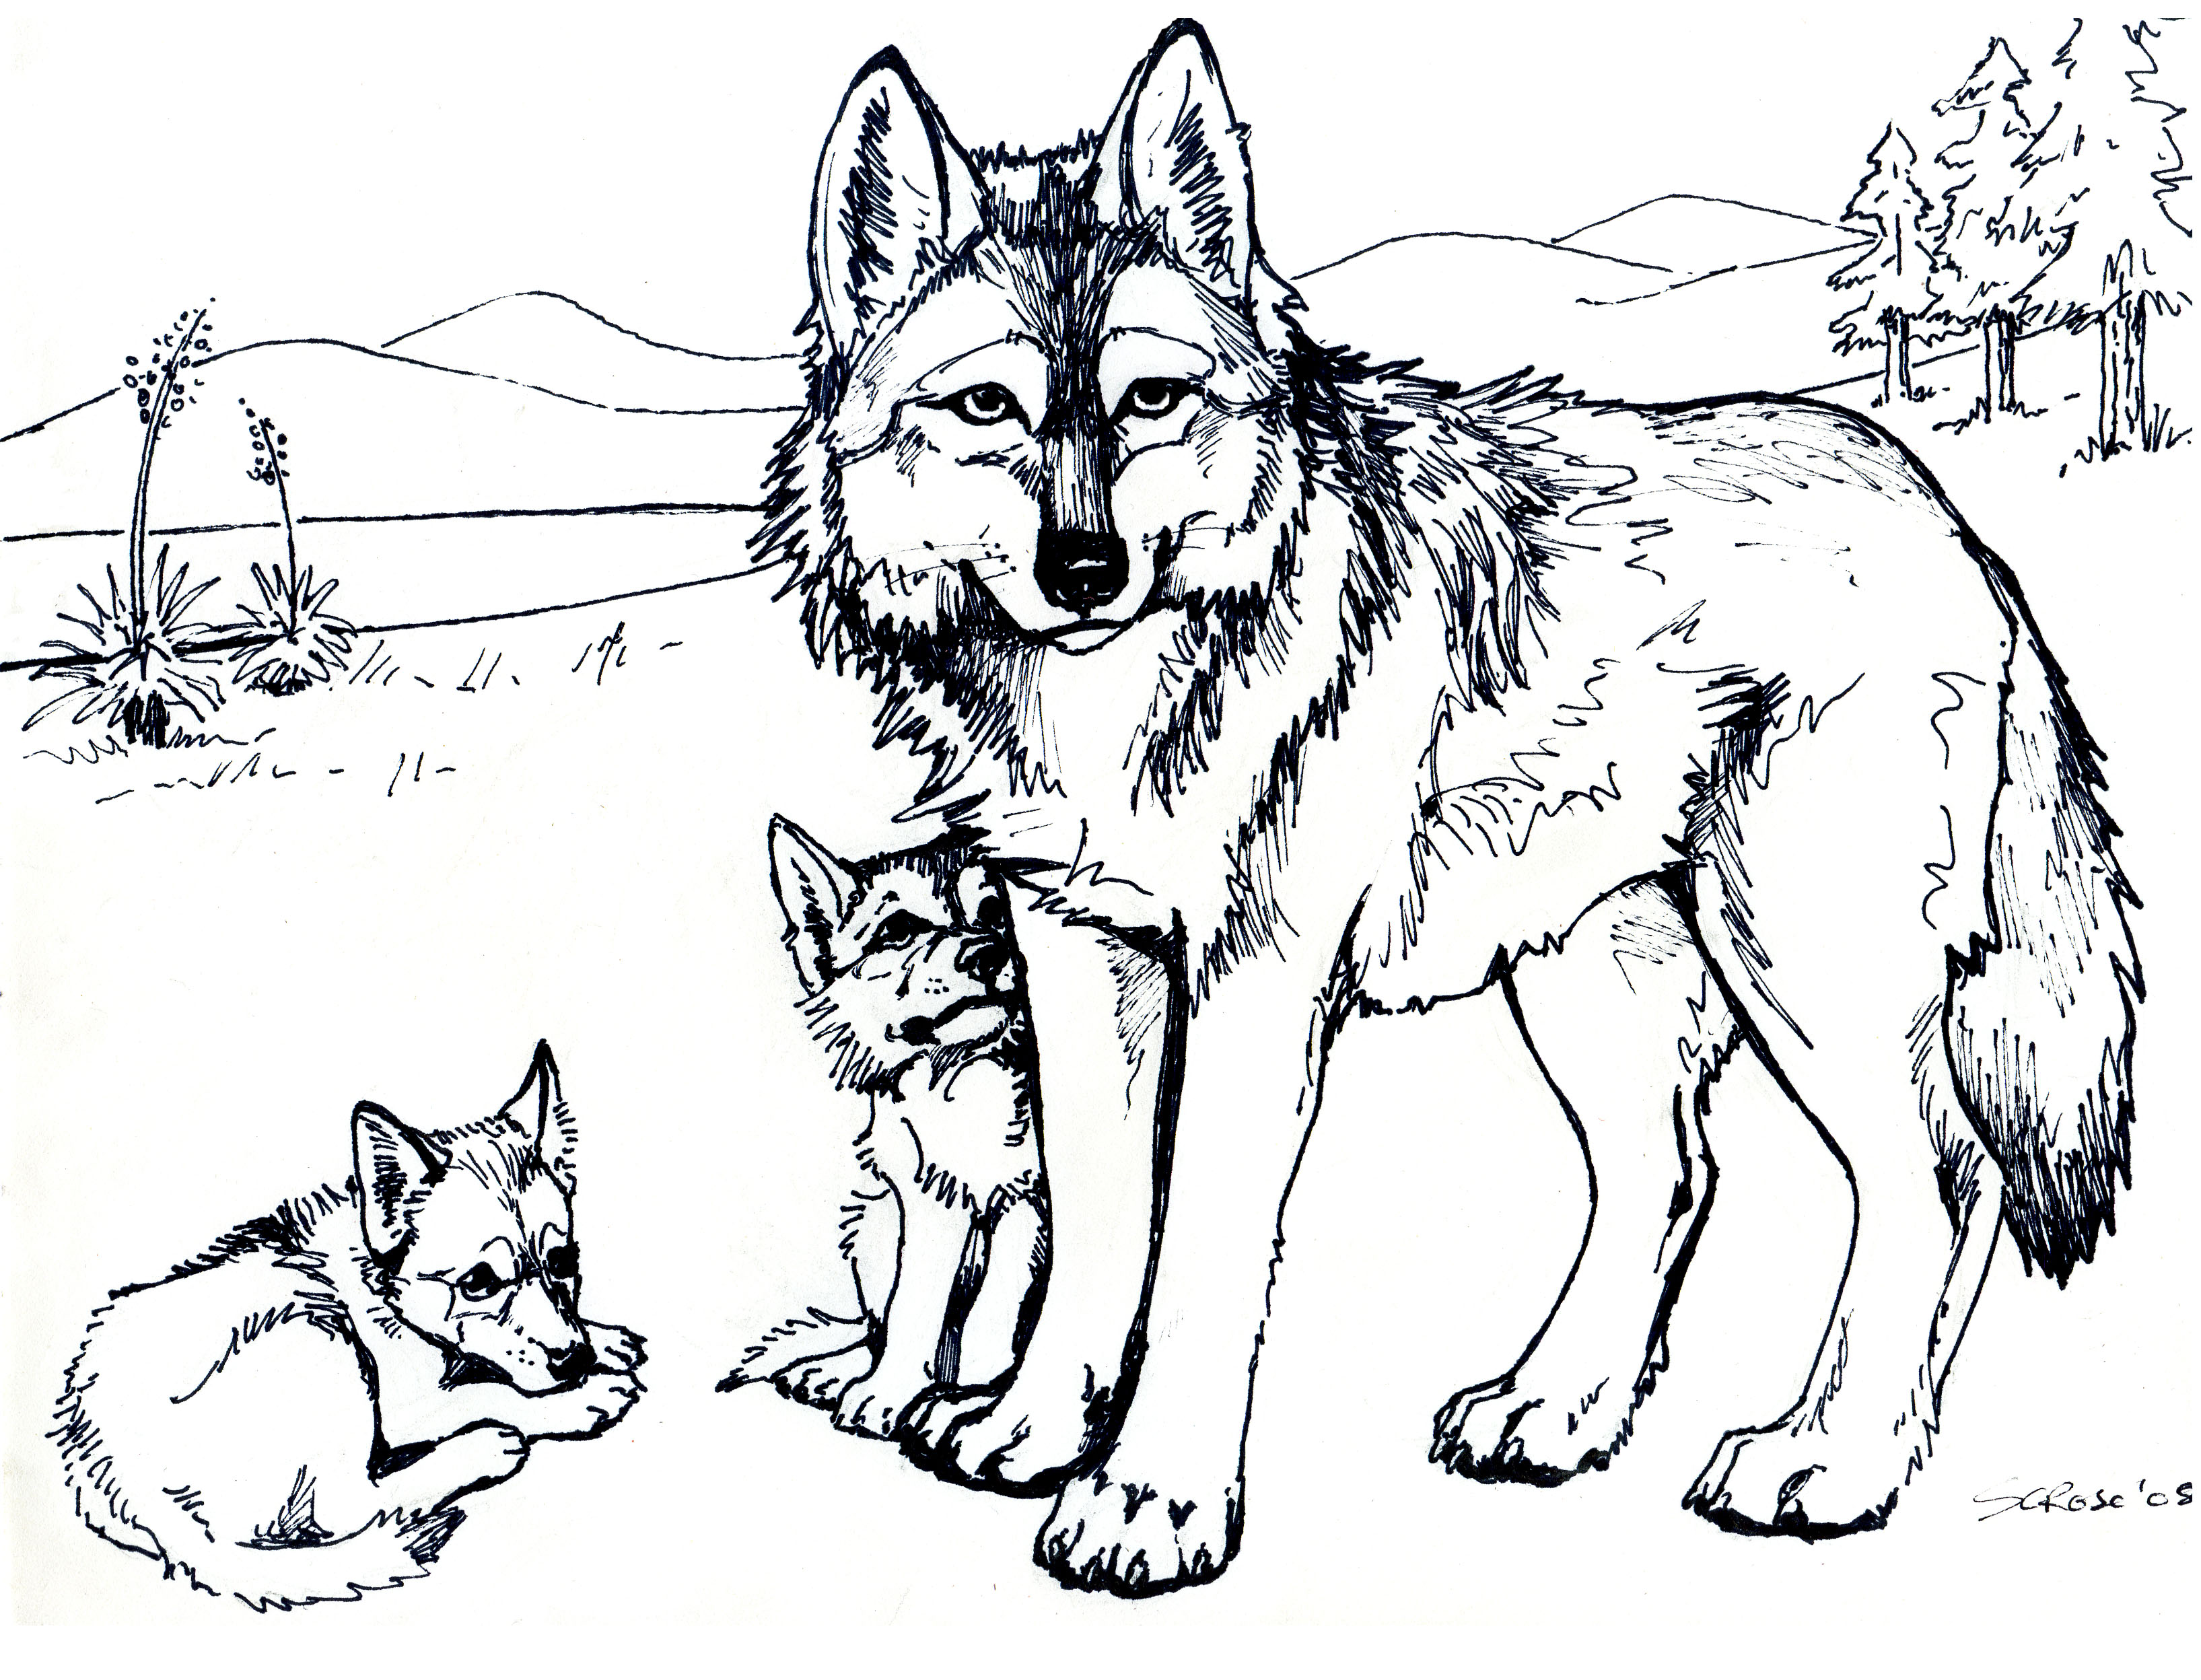 Free Printable Wolf Coloring Pages For Kids: www.bestcoloringpagesforkids.com/wolf-coloring-pages.html